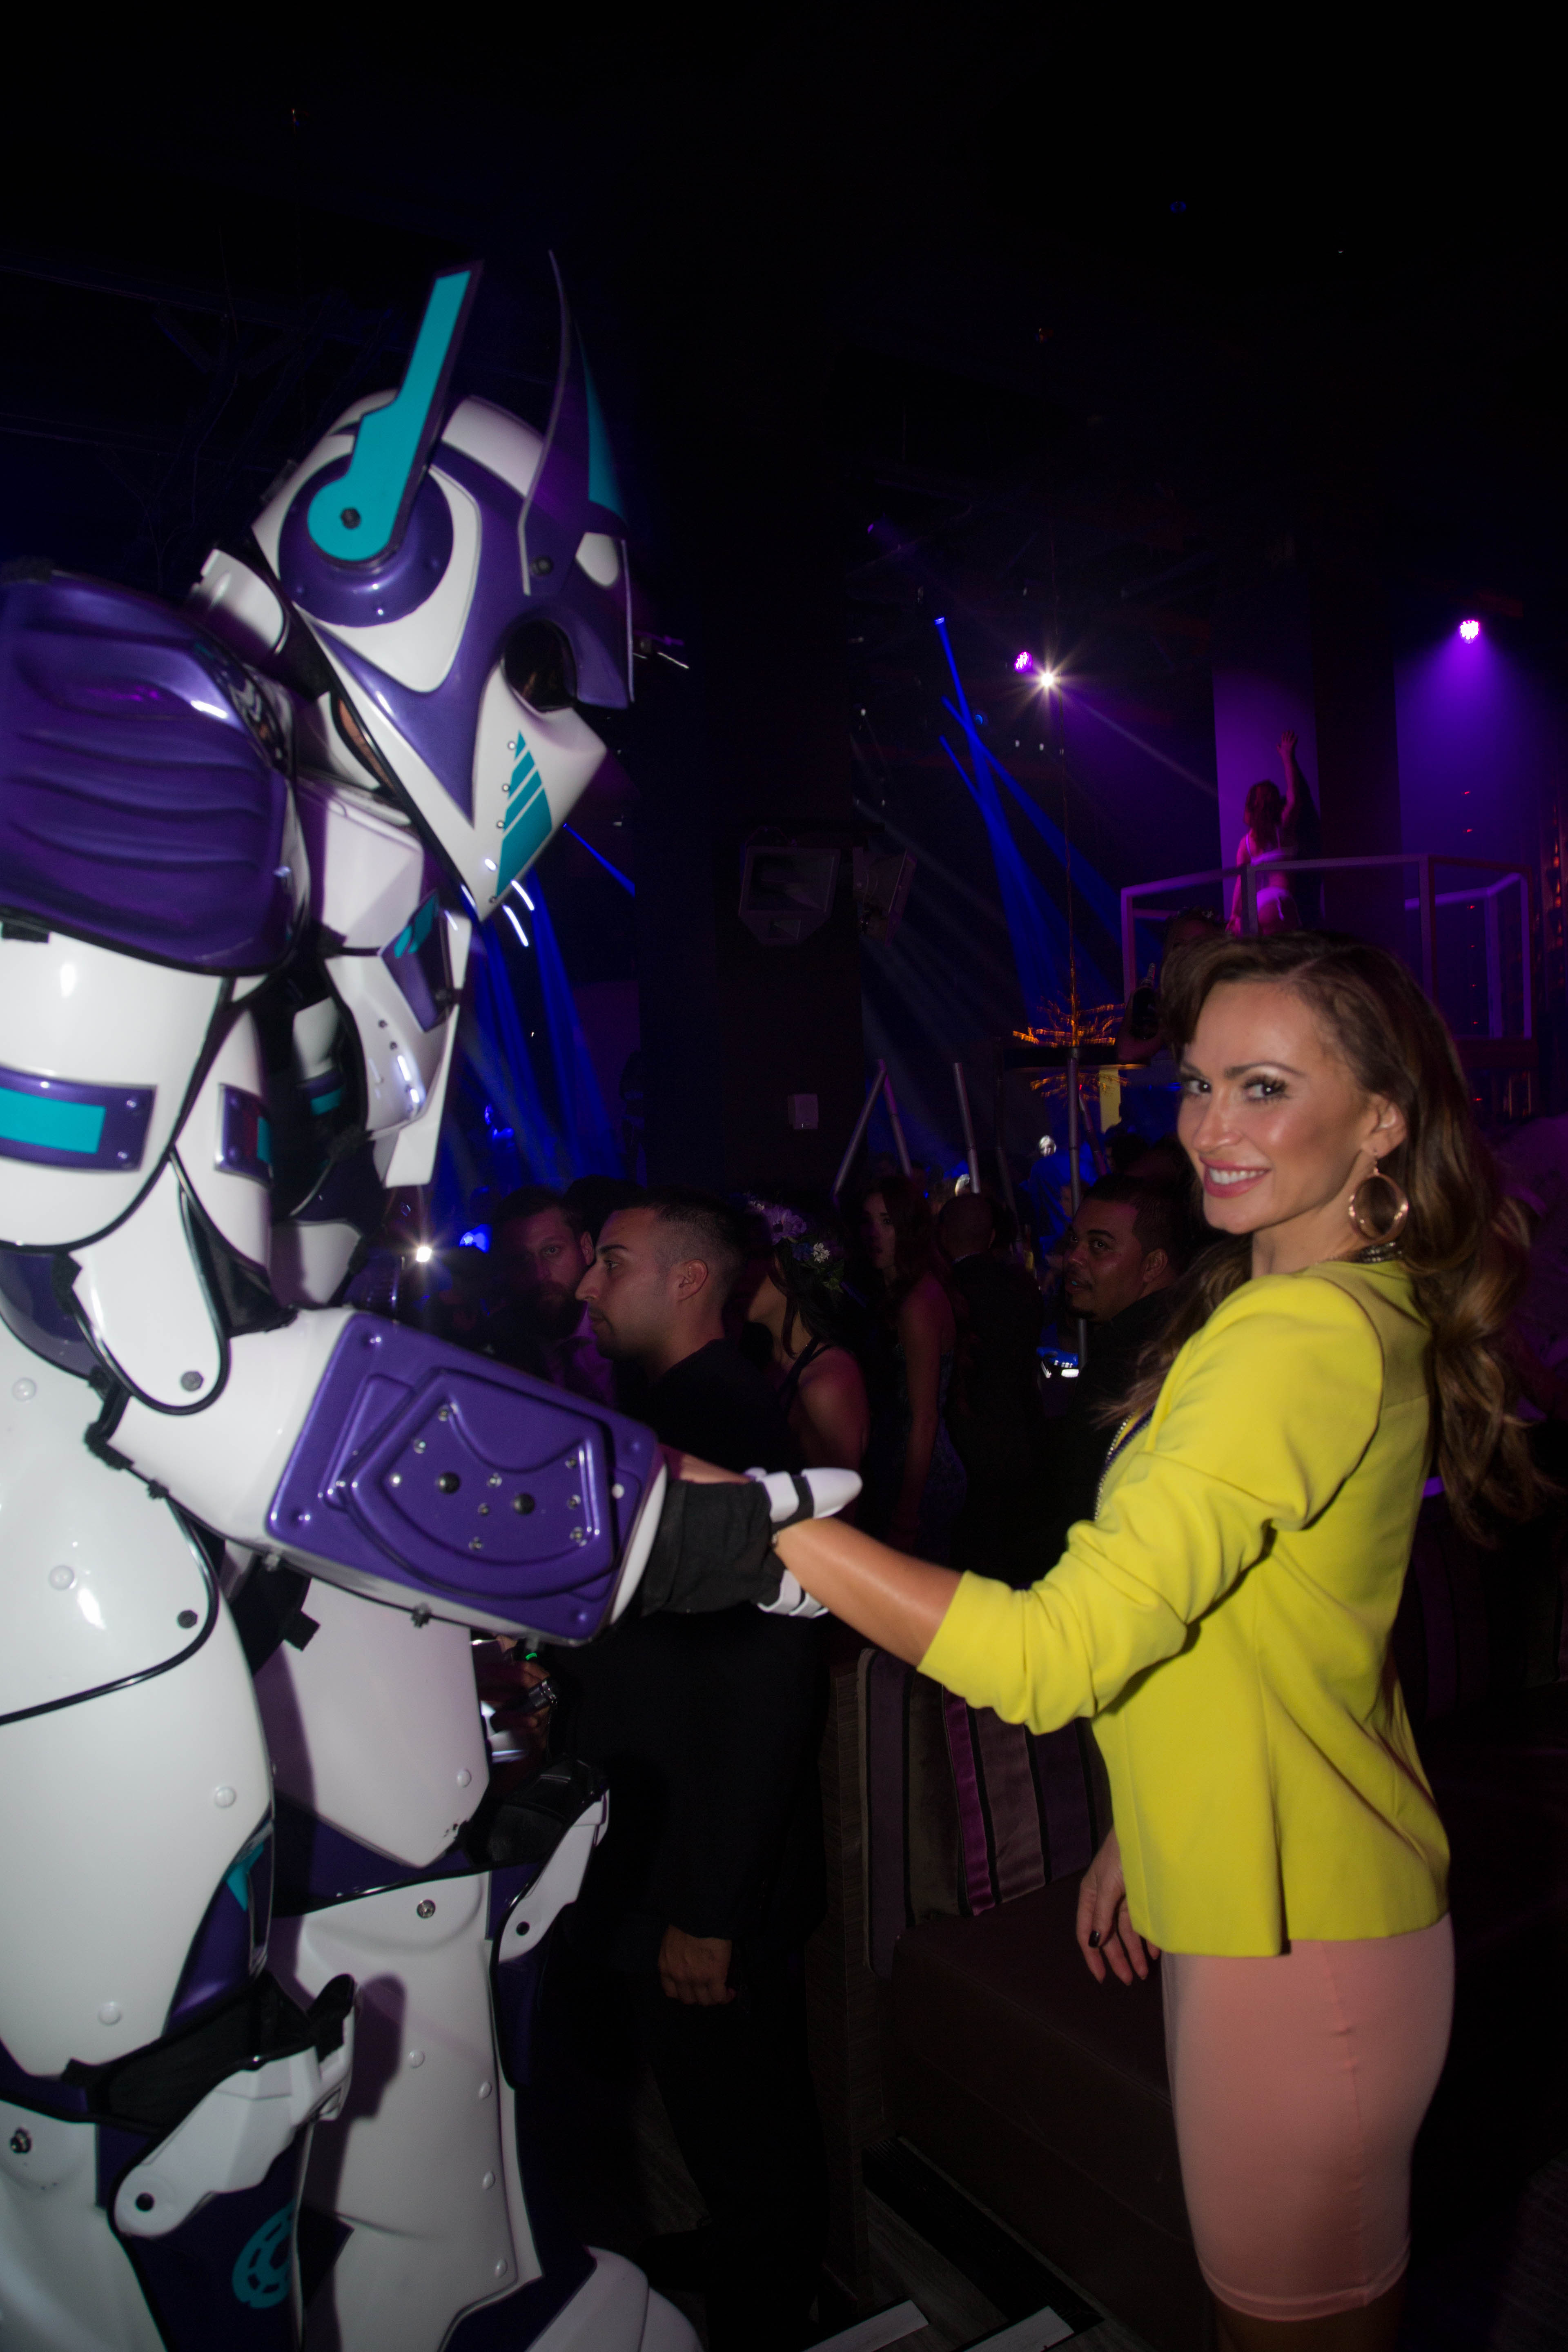 Dancing with the Stars' Karina Smirnoff (in a vintage dress, Lumier by Bariano jacket and Carlo Pazolini shoes) gets acquainted with Parq Restaurant & Nightclub's 10-foot-tall foot robot — aka Parq Rocatron — at its grand opening on Oct. 25. (Julien Jollon)